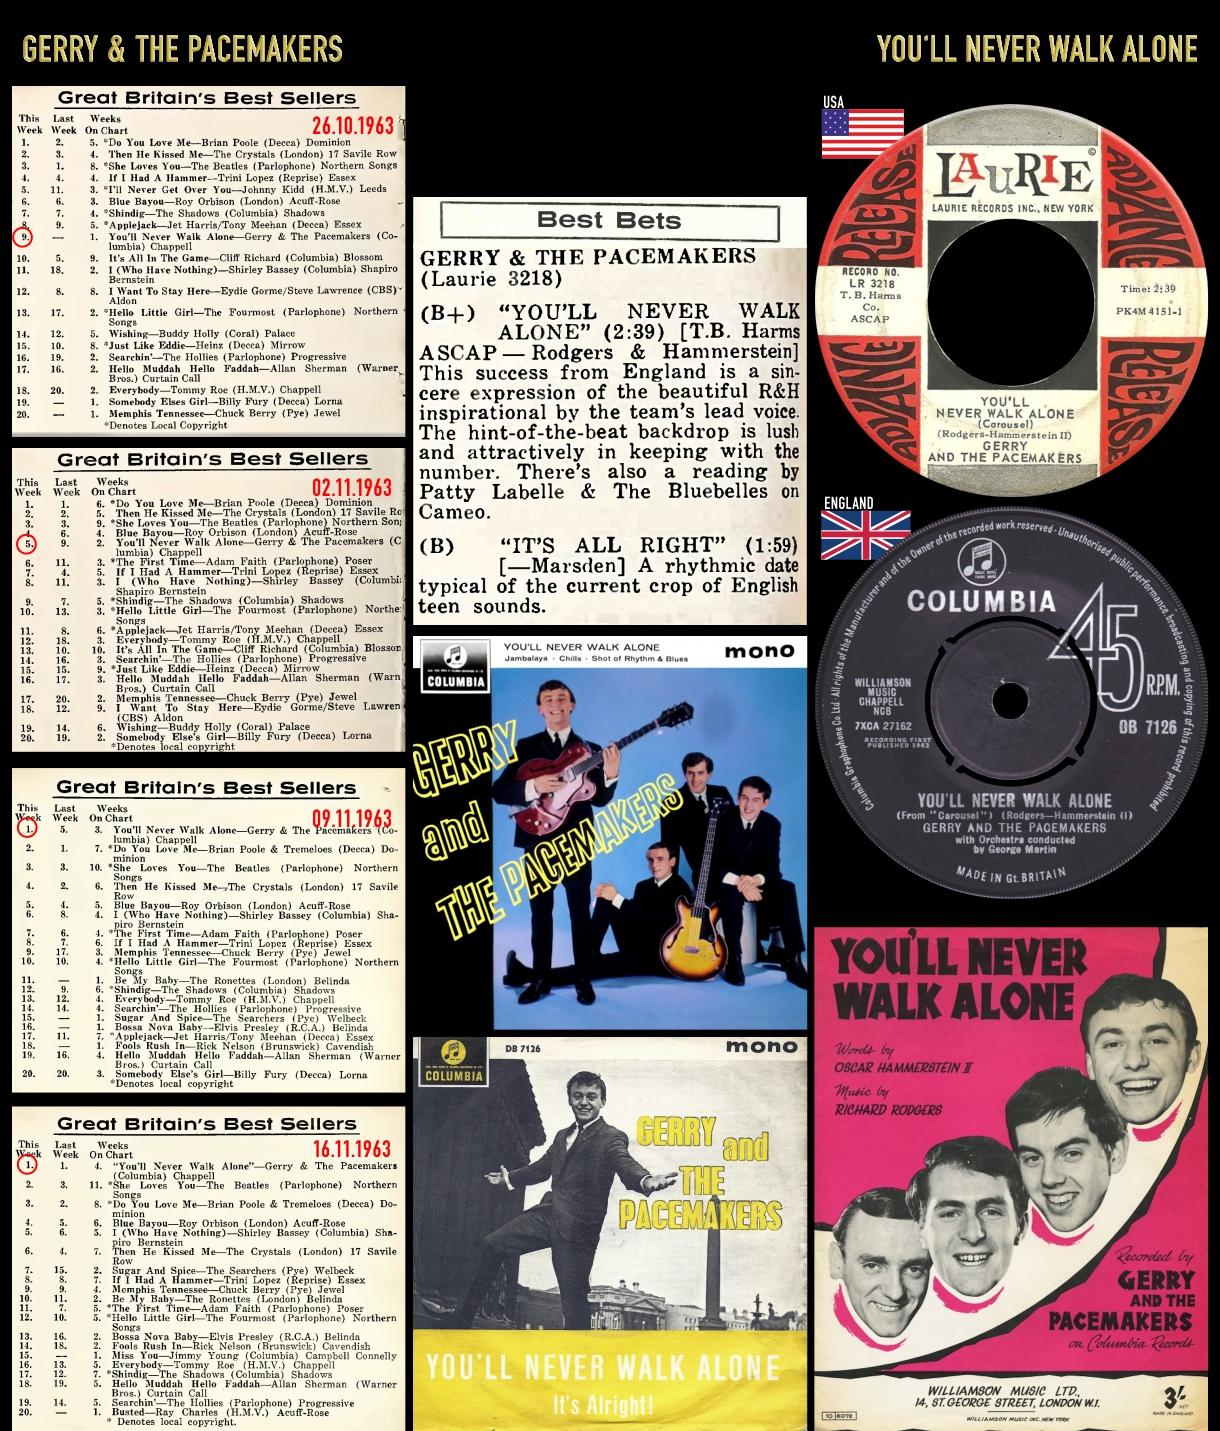 631012_Gerry & The Pacemakers_You'll Never Walk Alone